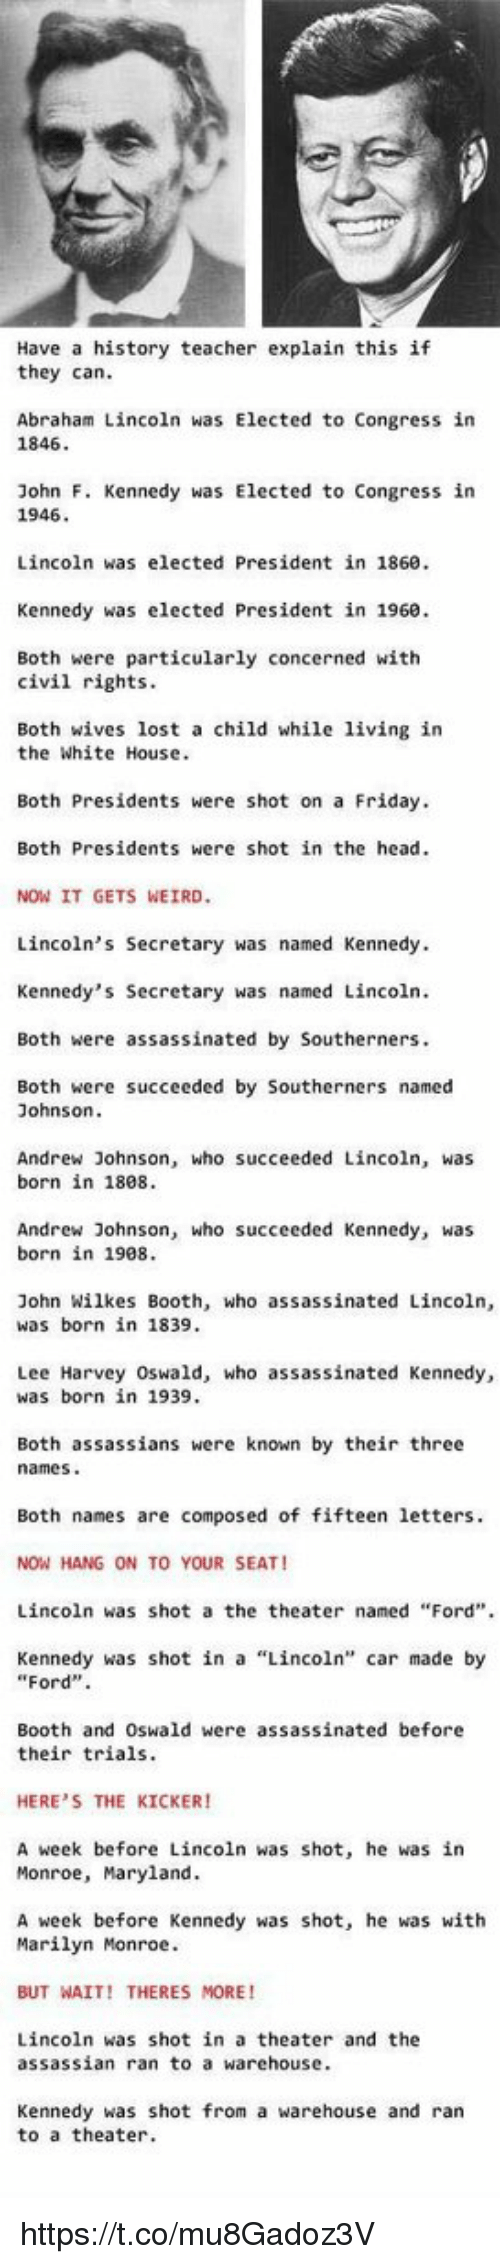 """Lee Harvey Oswald: Have a history teacher explain this if  they can.  Abraham Lincoln was Elected to Congress in  1846  John F. Kennedy was Elected to Congress in  1946.  Lincoln was elected President in 1860.  Kennedy was elected President in 1960.  Both were particularly concerned with  civil rights.  Both wives lost a child while living in  the White House.  Both Presidents were shot on a Friday.  Both Presidents were shot in the head.  NOW IT GETS WEIRD.  Lincoln's Secretary was named Kennedy.  Kennedy's Secretary was named Lincoln.  Both were assassinated by Southerners.  Both were succeeded by Southerners named  Johnson.  Andrew Johnson, who succeeded Lincoln, was  born in 1808.  Andrew Johnson, who succeeded Kennedy, was  born in 1908.  John Wilkes Booth, who assassinated Lincoln,  was born in 1839.  Lee Harvey Oswald, who assassinated Kennedy,  was born in 1939.  Both assassians were known by their three  names  Both names are composed of fifteen letters.  NOW HANG ON TO YOUR SEAT!  Lincoln was shot a the theater named """"Ford"""".  Kennedy was shot in a Lincoln'  car made by  """"Ford"""".  Booth and Oswald were assassinated before  their trials.  HERE'S THE KICKER!  A week before Lincoln was shot, he was in  Monroe, Maryland.  A week before Kennedy was shot, he was with  Marilyn Monroe.  BUT WAIT! THERES MORE  Lincoln was shot in a theater and the  assassian ran to a warehouse.  Kennedy was shot from a warehouse and ran  to a theater. https://t.co/mu8Gadoz3V"""